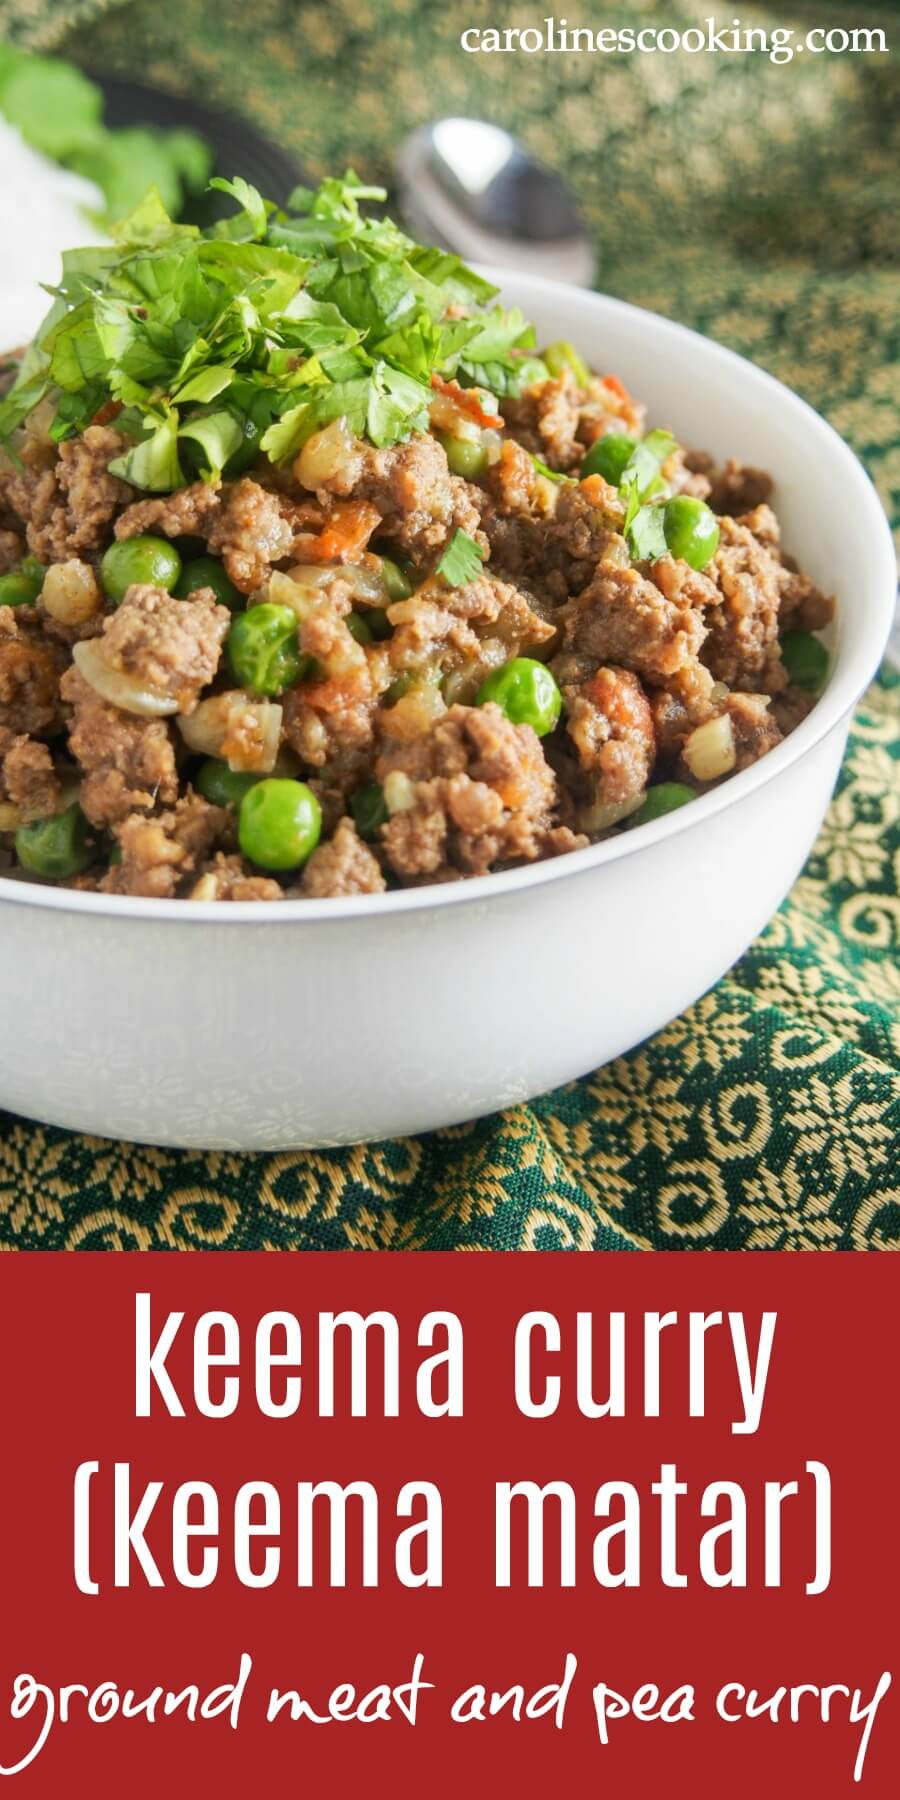 Keema curry (keema matar) is a delicious Indian/Pakistani ground meat and pea curry. Easy to make, and with plenty of flavor, it's a great meal for any night of the week. It's also perfect for meal prep. #groundbeefrecipe #indianfood #indiancurry #30minutemeal